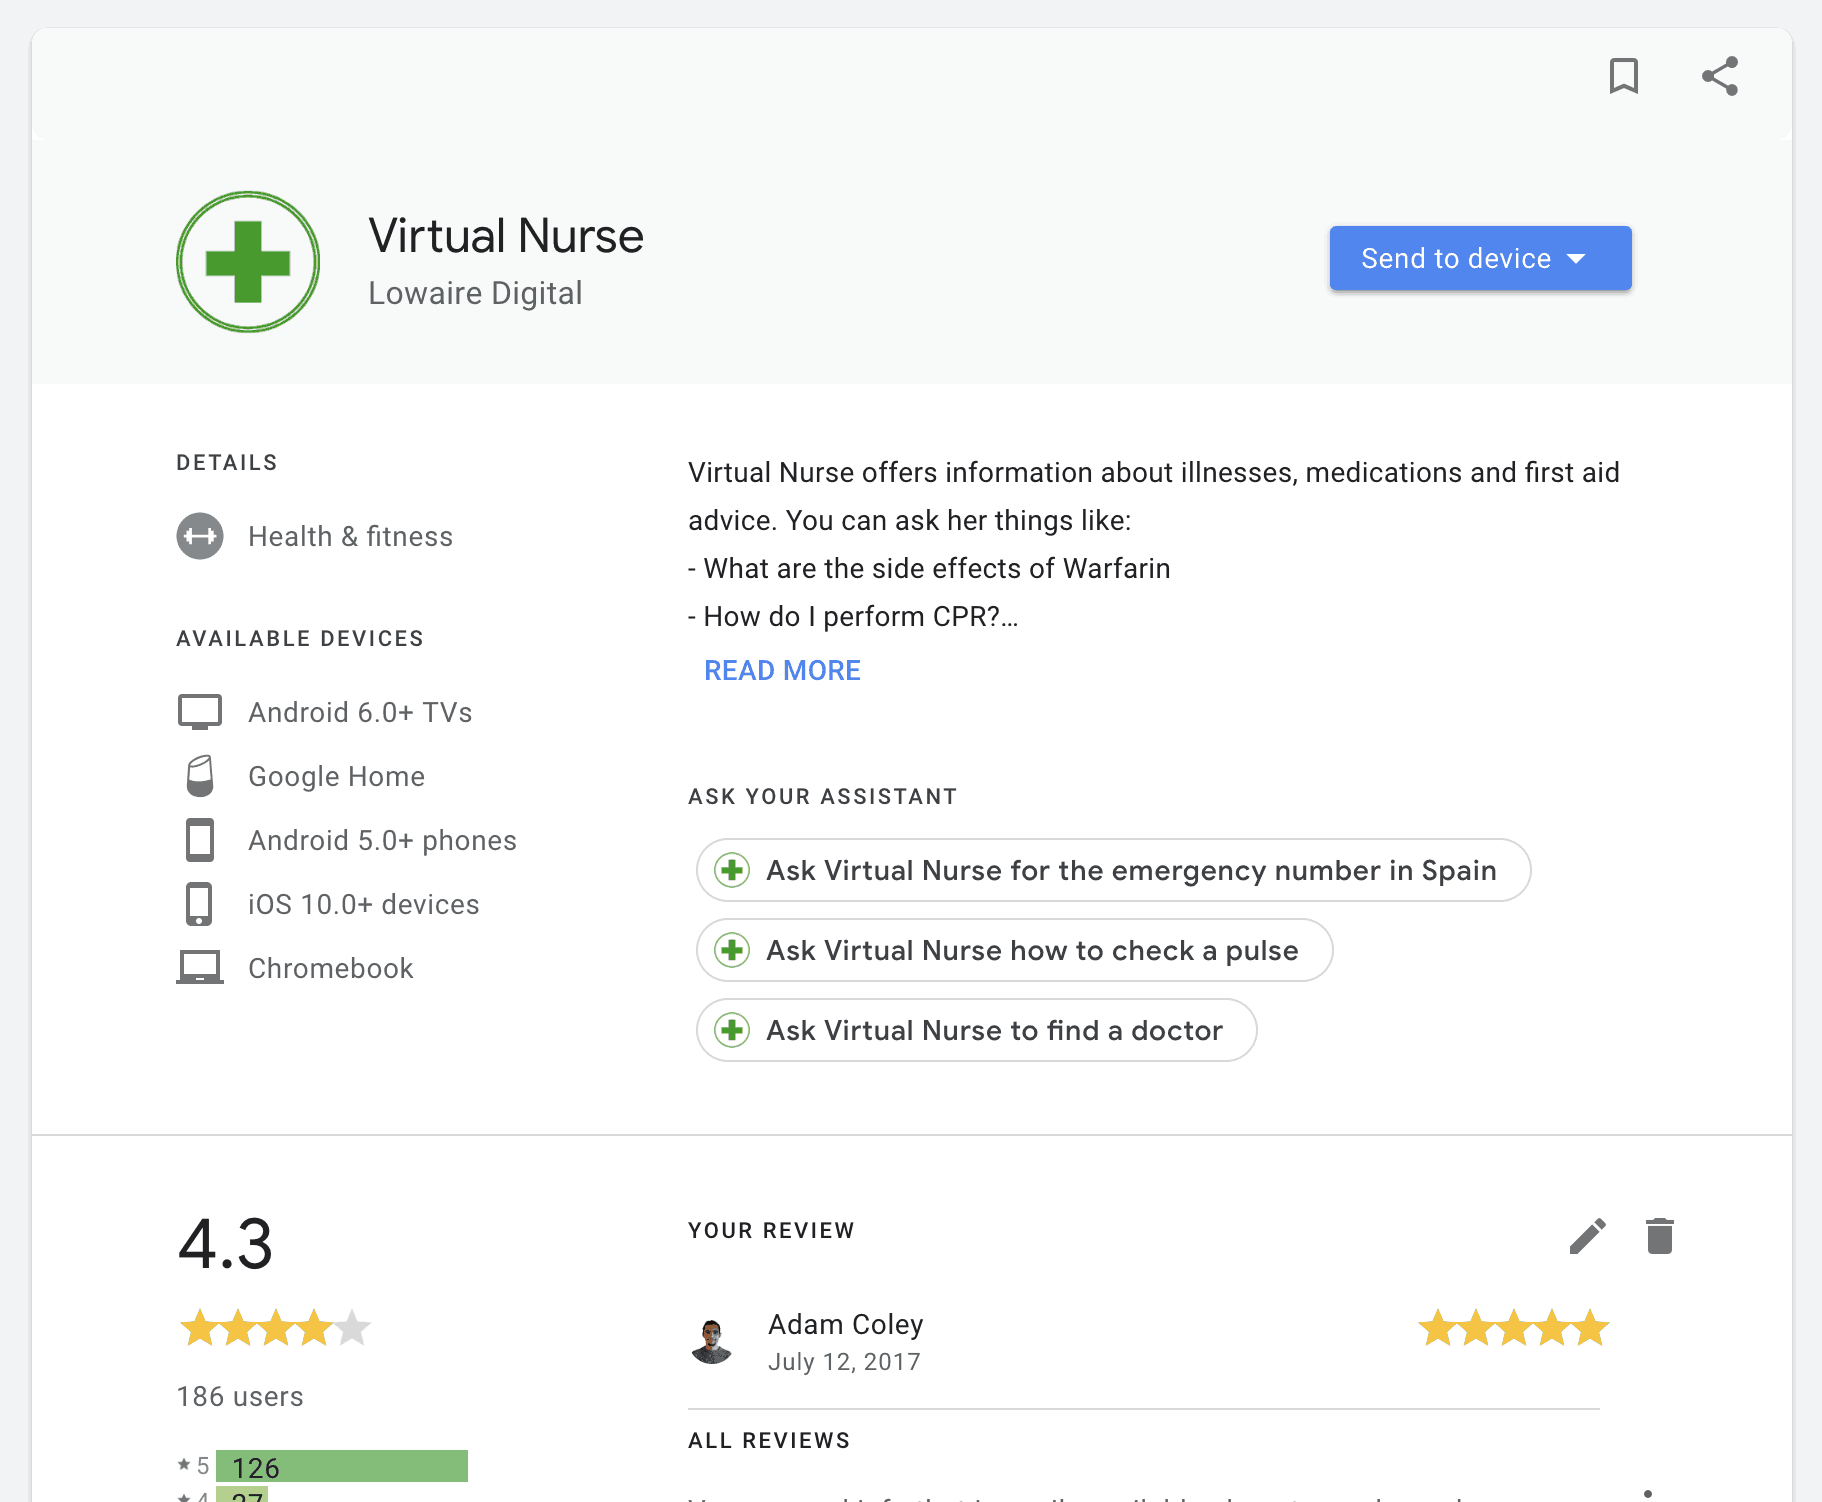 virtual nurse google ranking